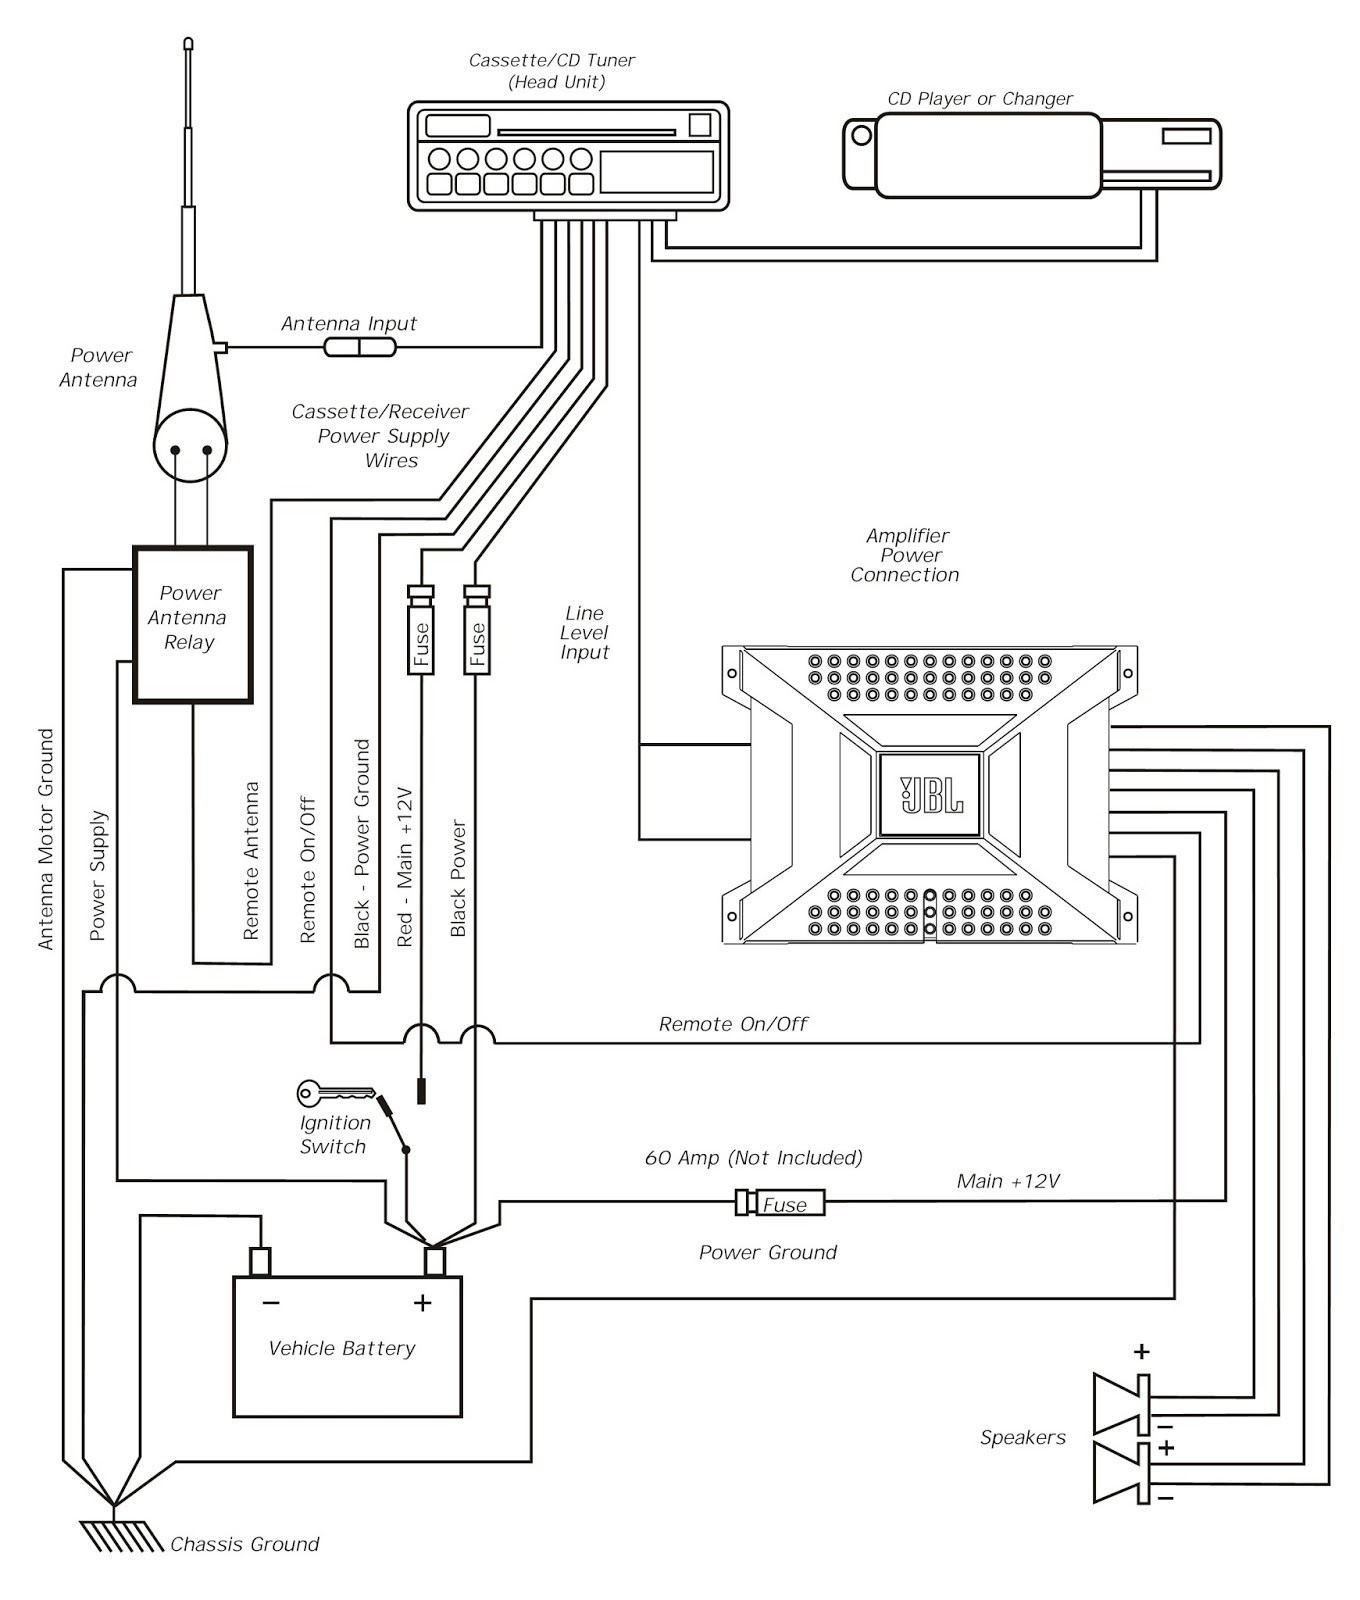 200 Amp Disconnect Wiring Diagram | Free Wiring Diagram  Wire Amp Disconnect Wiring Diagram on 200 amp service disconnect, 200 amp disconnect installation, 200 amp disconnect parts, 200 amp disconnect breaker, meter base wiring diagram, amp meter wiring diagram, 50 amp service wiring diagram, 200 amp main breaker panel, amp gauge wiring diagram, 200 amp wiring requirements, 200 amp disconnect dimensions, 200 amp disconnect box, 200 amp electrical disconnect, 200 amp electric service, car amp installation diagram, meter socket wiring diagram, 200 amp disconnect accessories, bridged amp diagram, 200 amp disconnect with meter, service panel diagram,